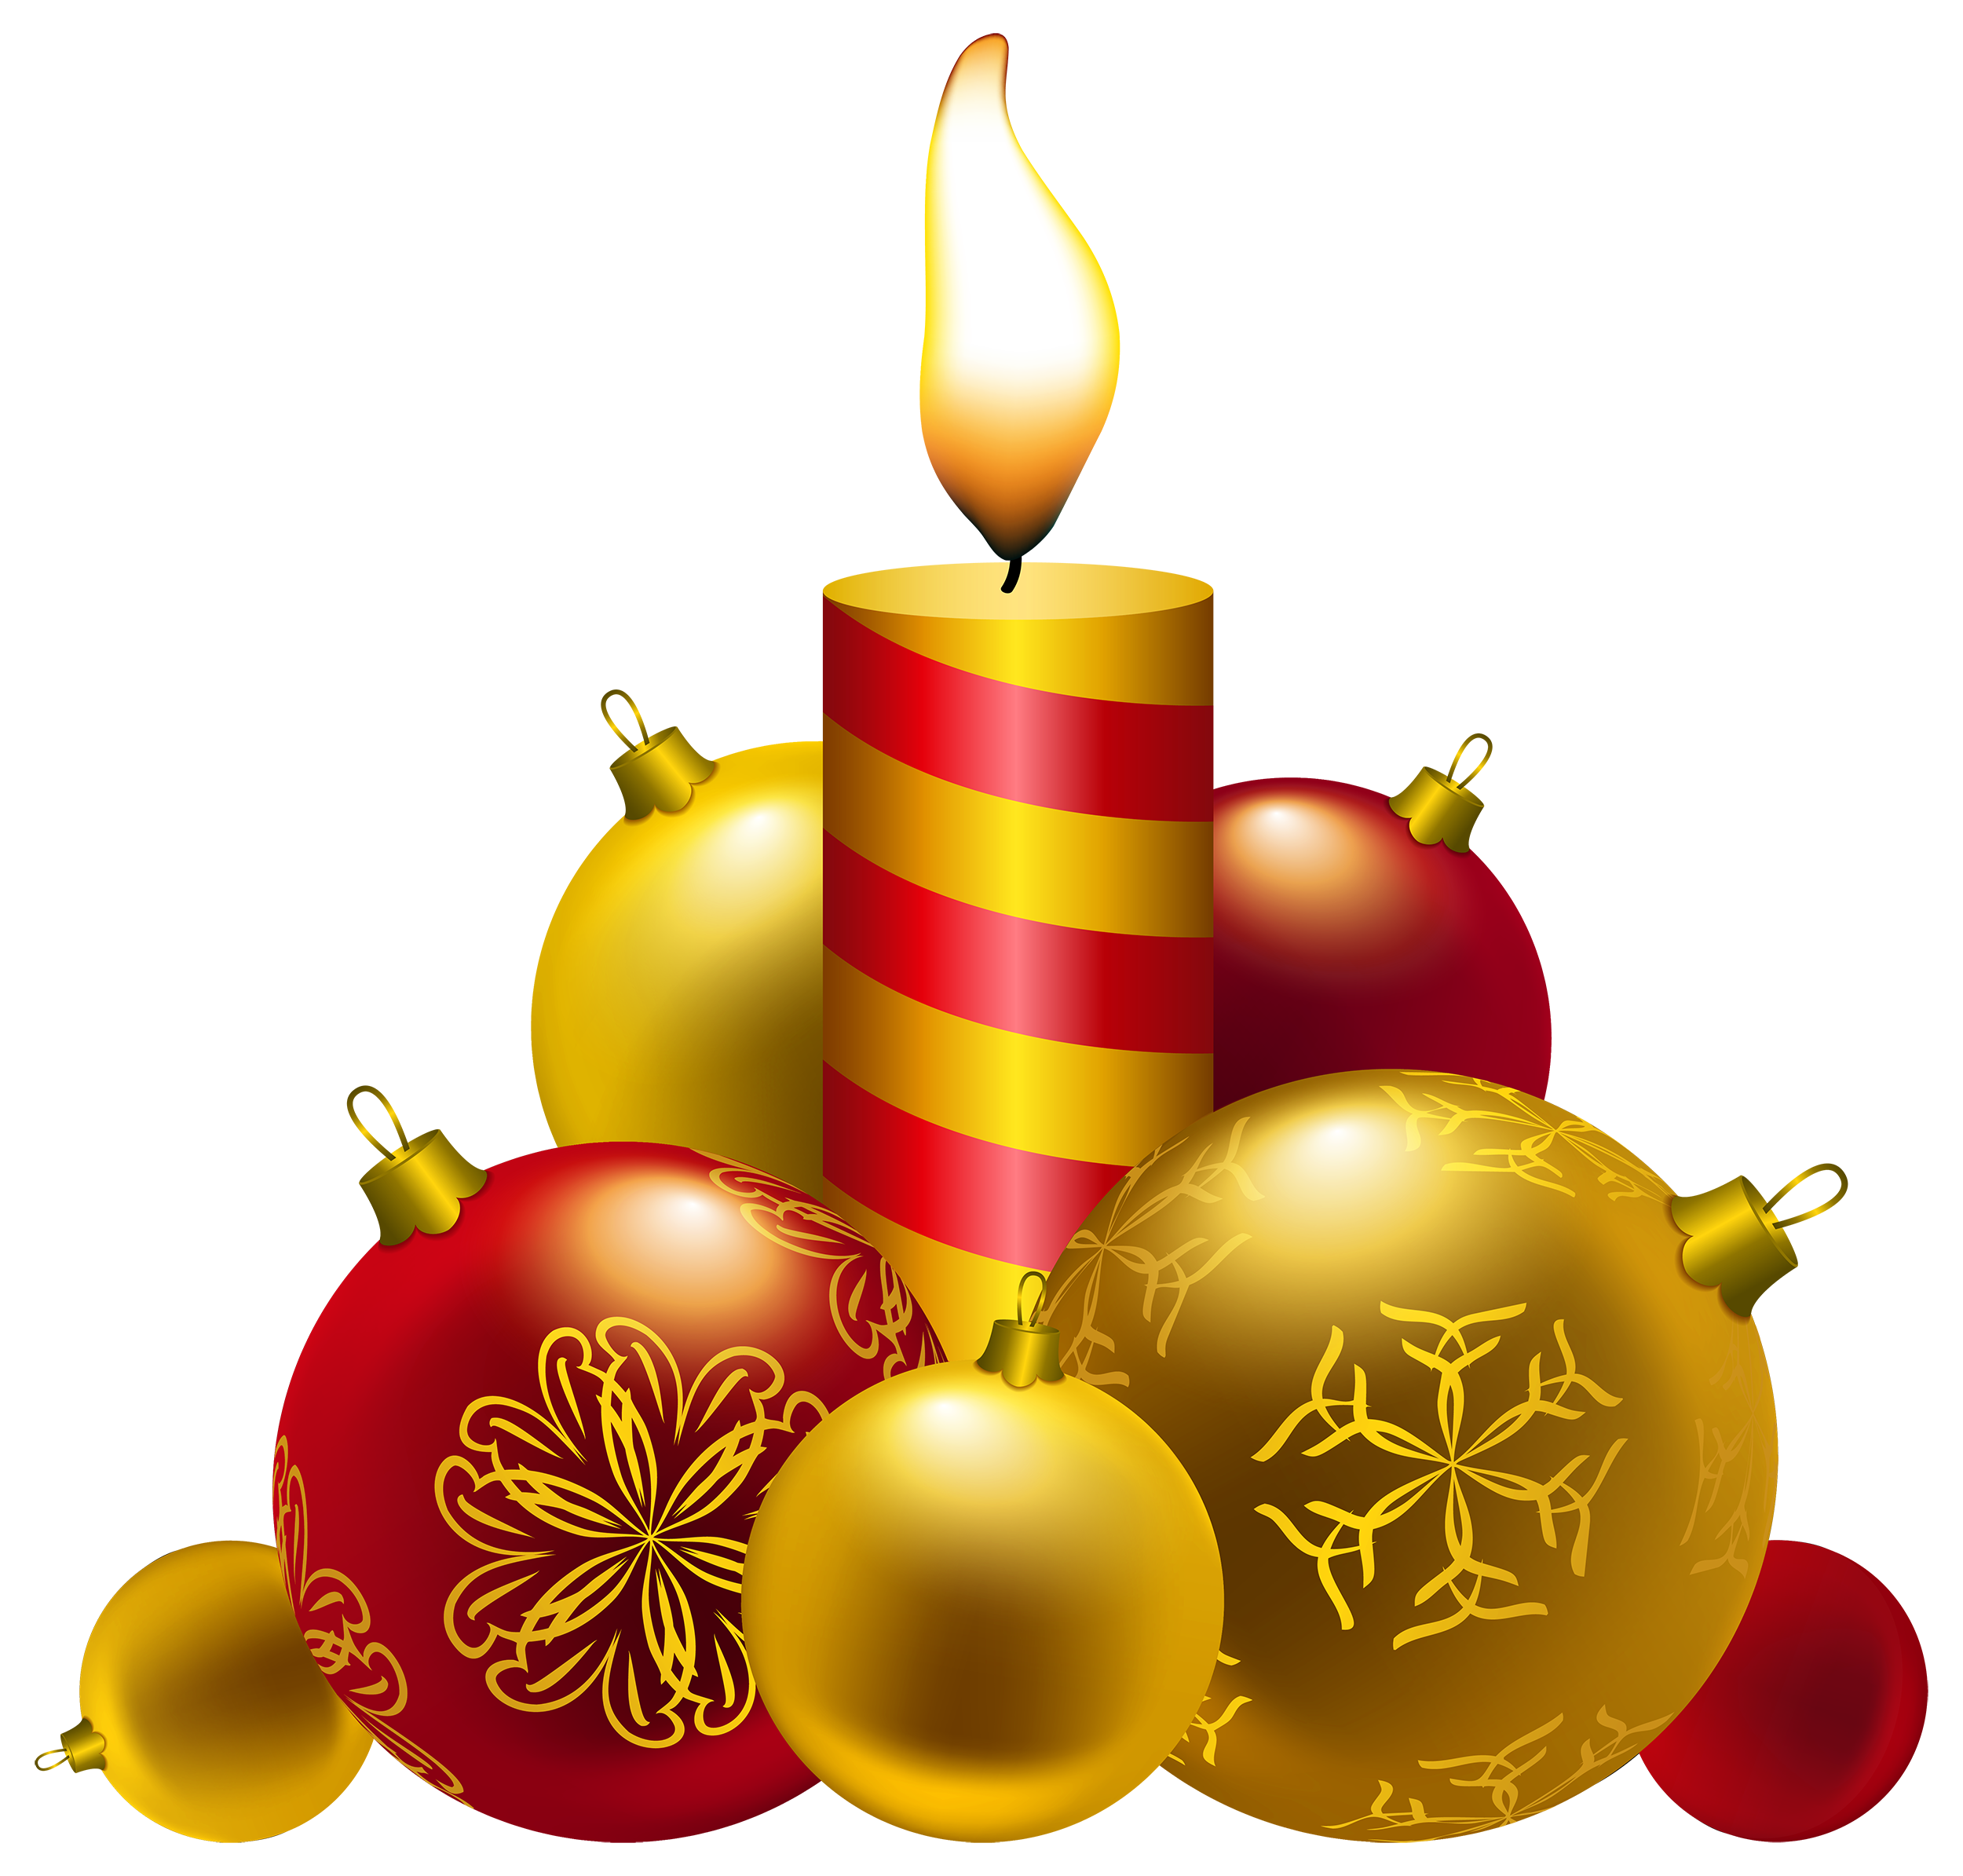 Christmas ornaments clear background images png candles. Clipart best web